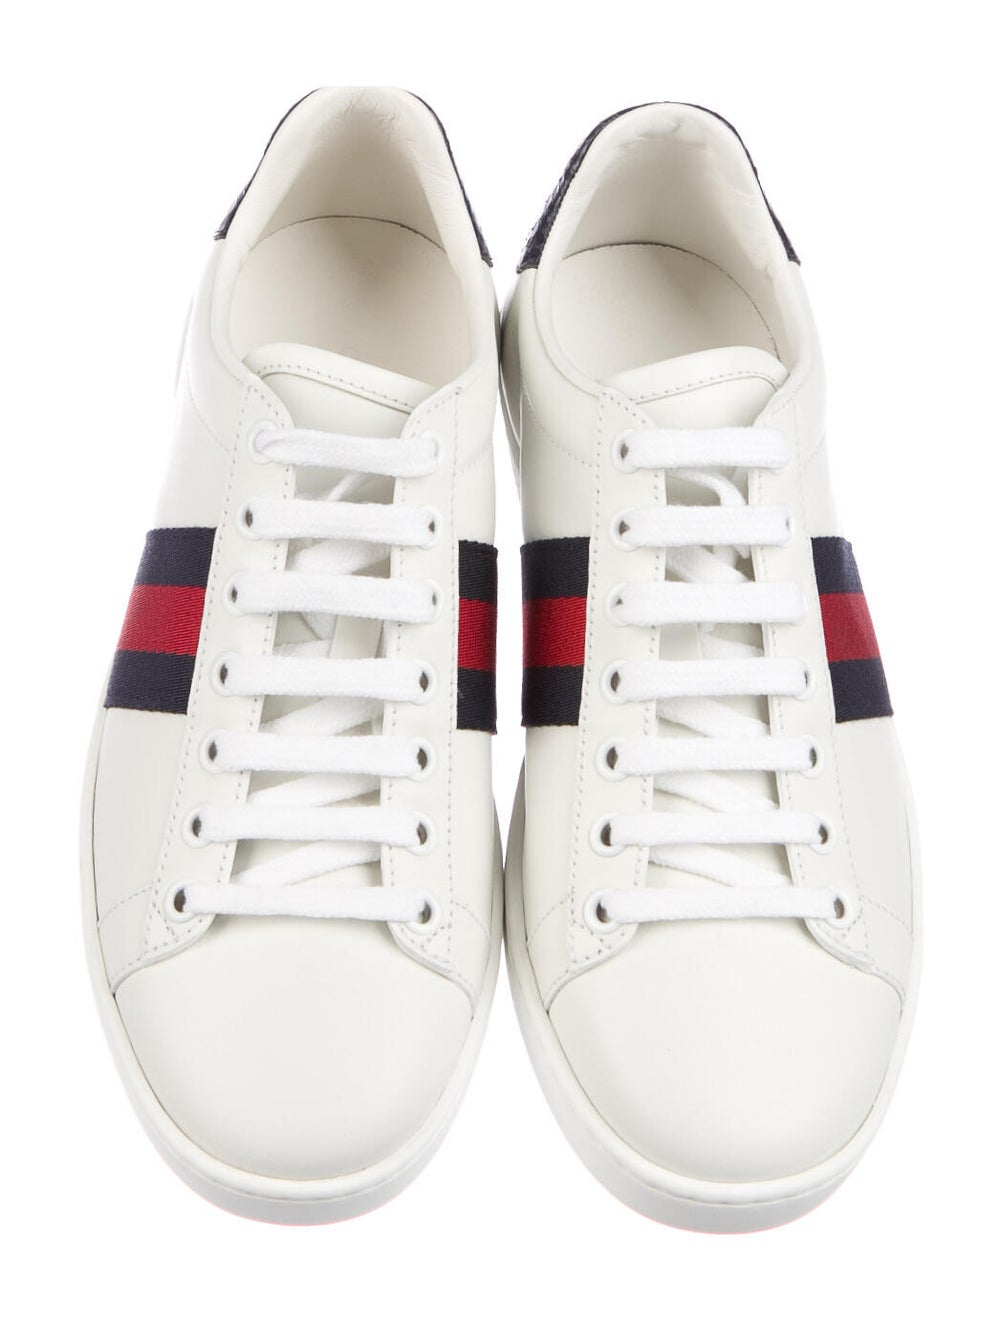 Gucci Sylvie Web Accent Leather Sneakers White - image 3